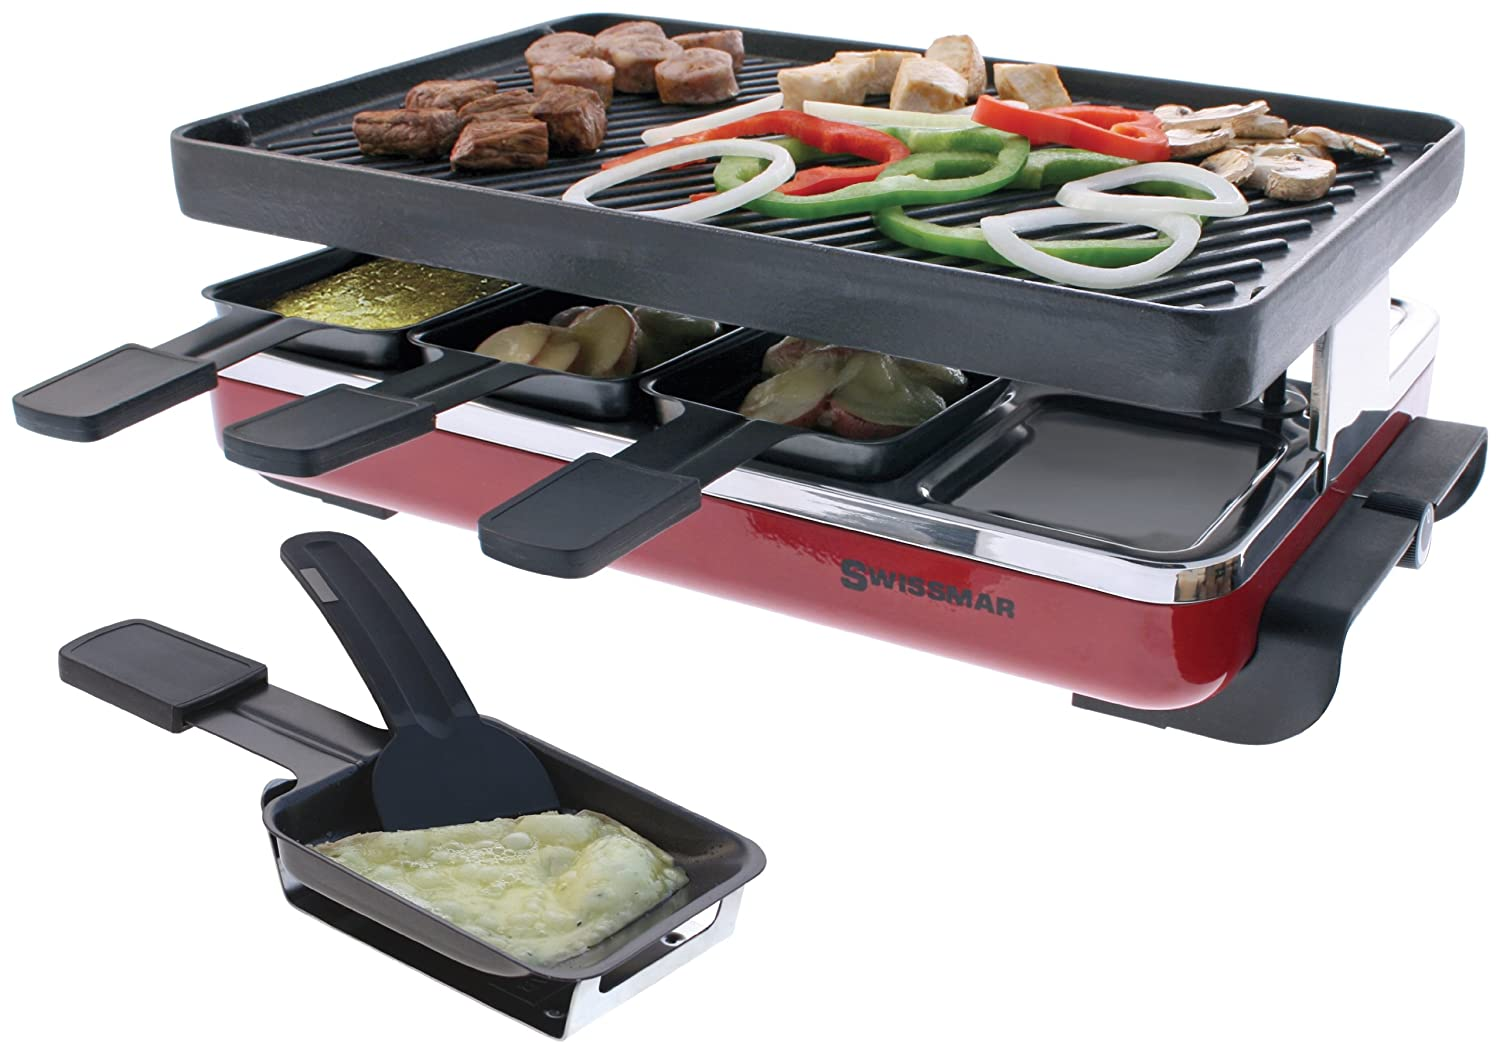 4. Swissmar KF-77046 Classic 8 Person Raclette with Reversible Cast Iron Grill Plate/Crepe Top, Red